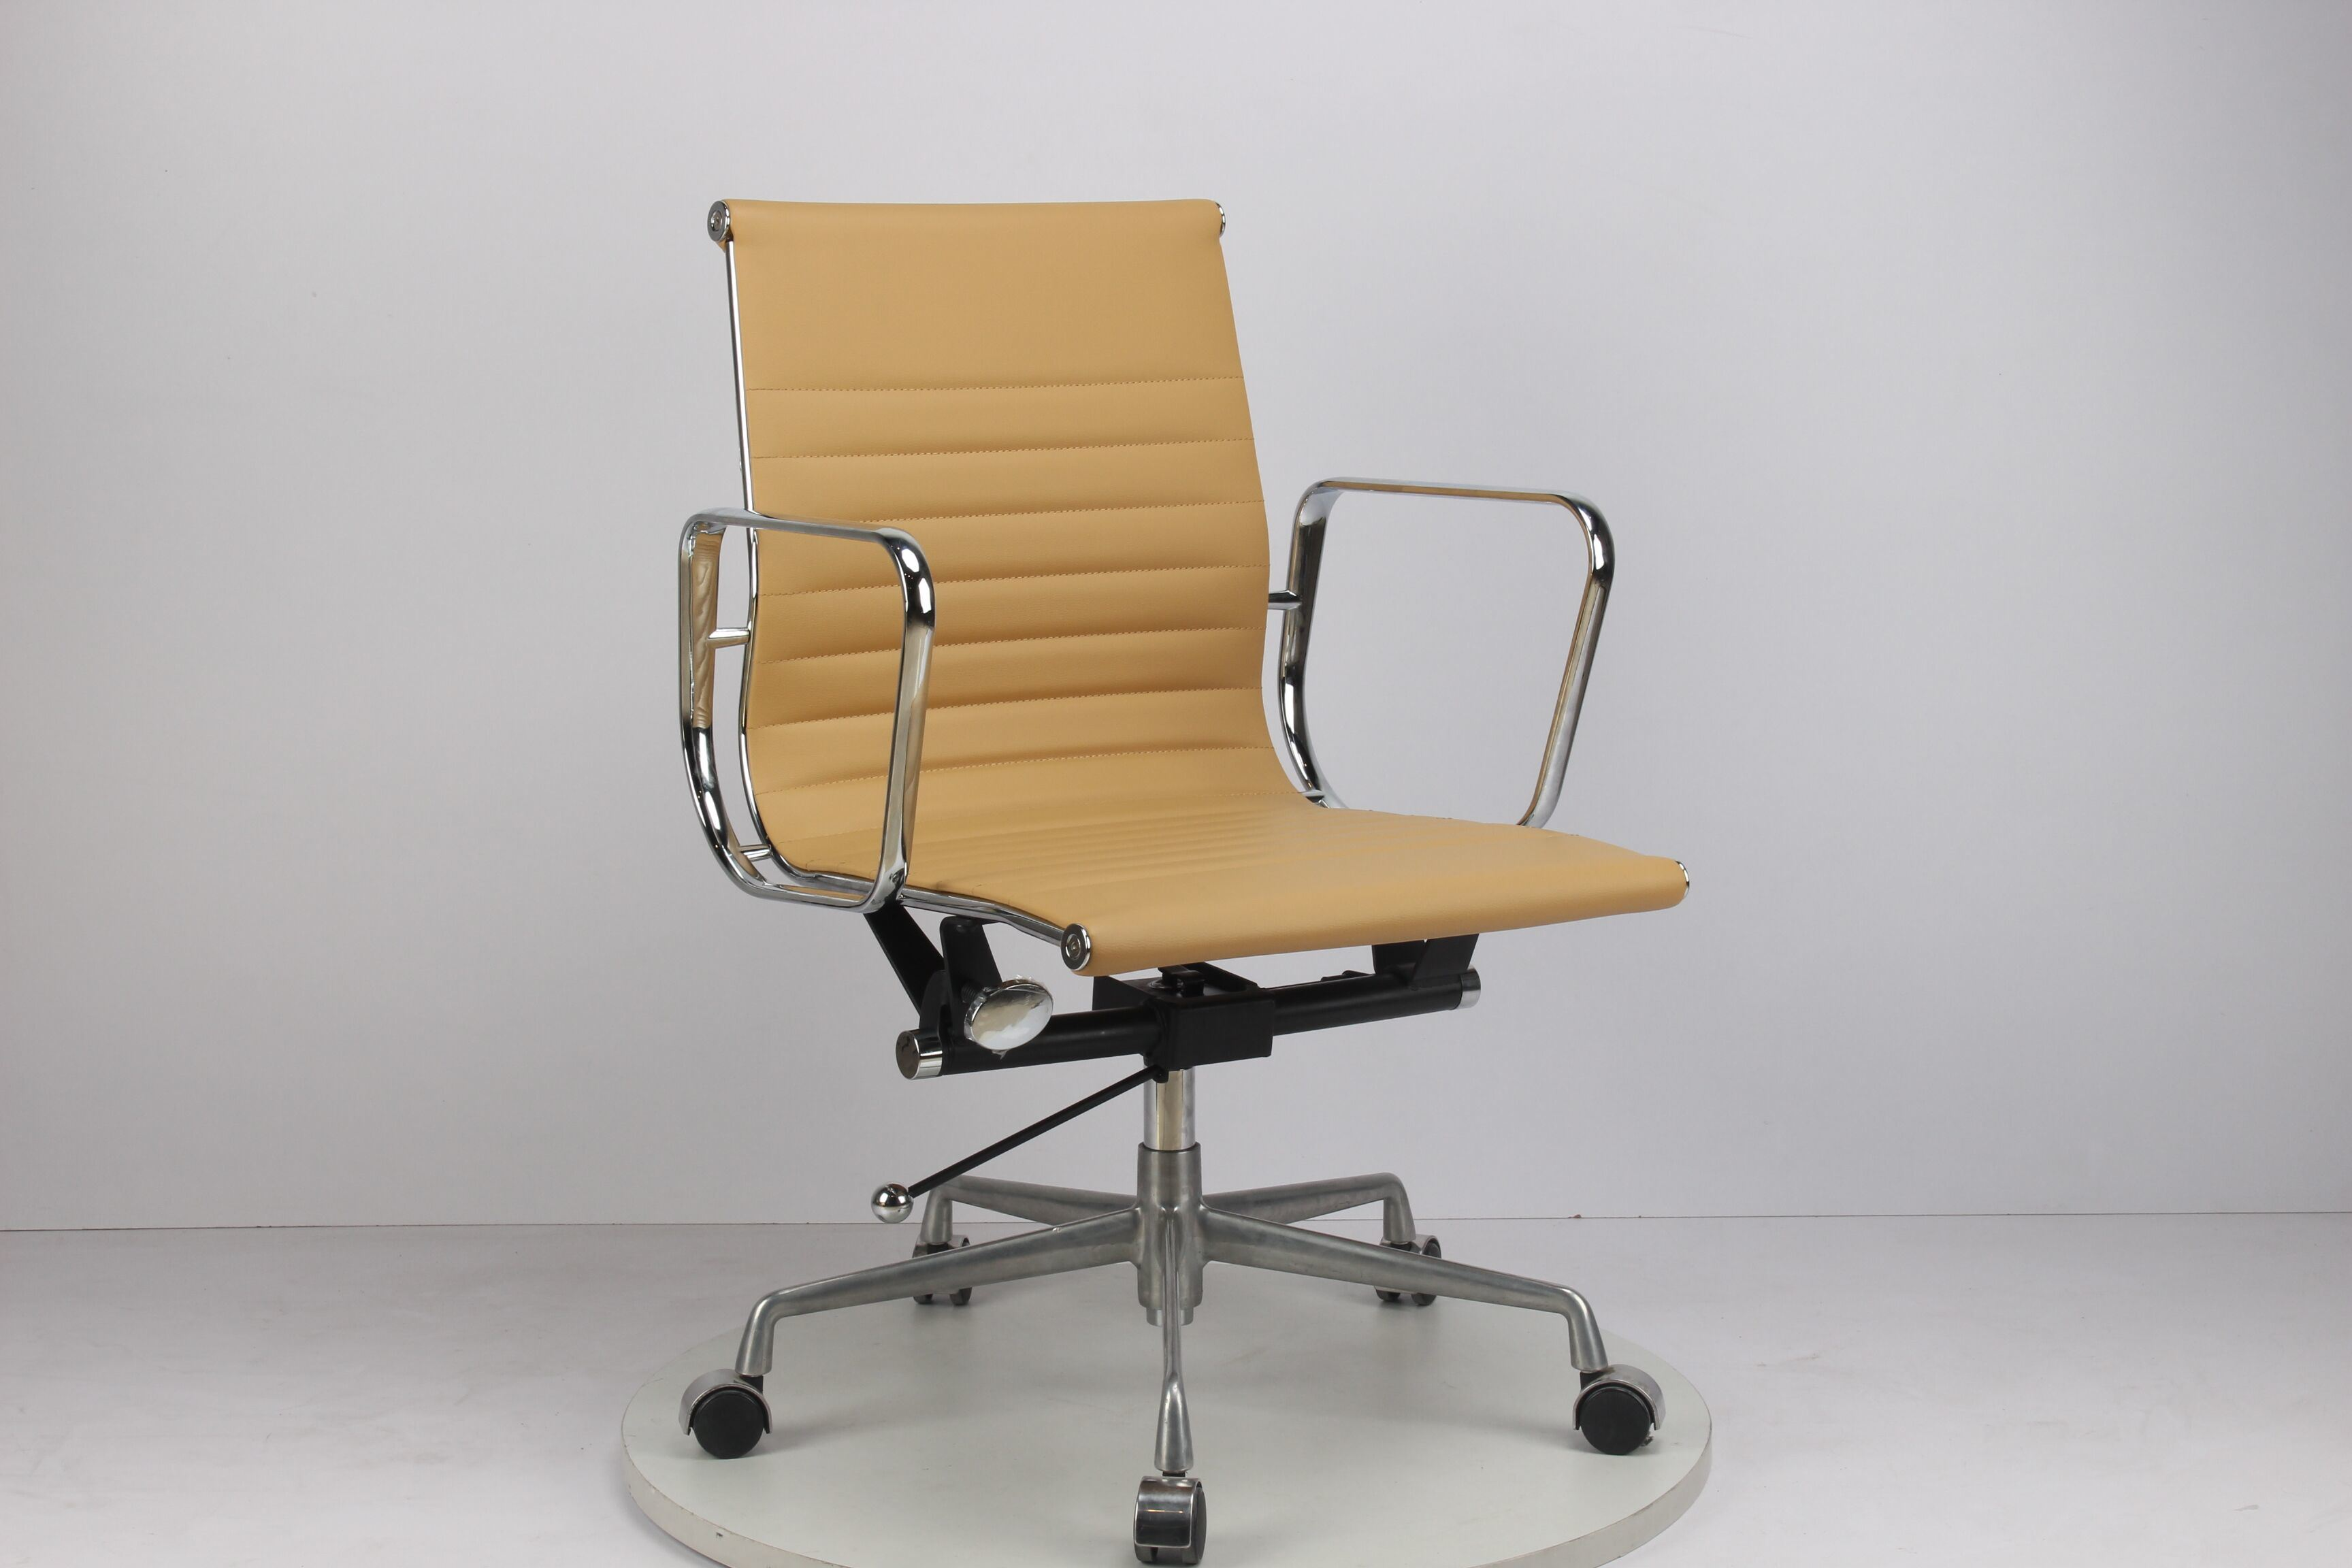 Miraculous Hot Item Soft Padded Mid Back Office Chair Light Brown Leather Interior Design Ideas Inesswwsoteloinfo